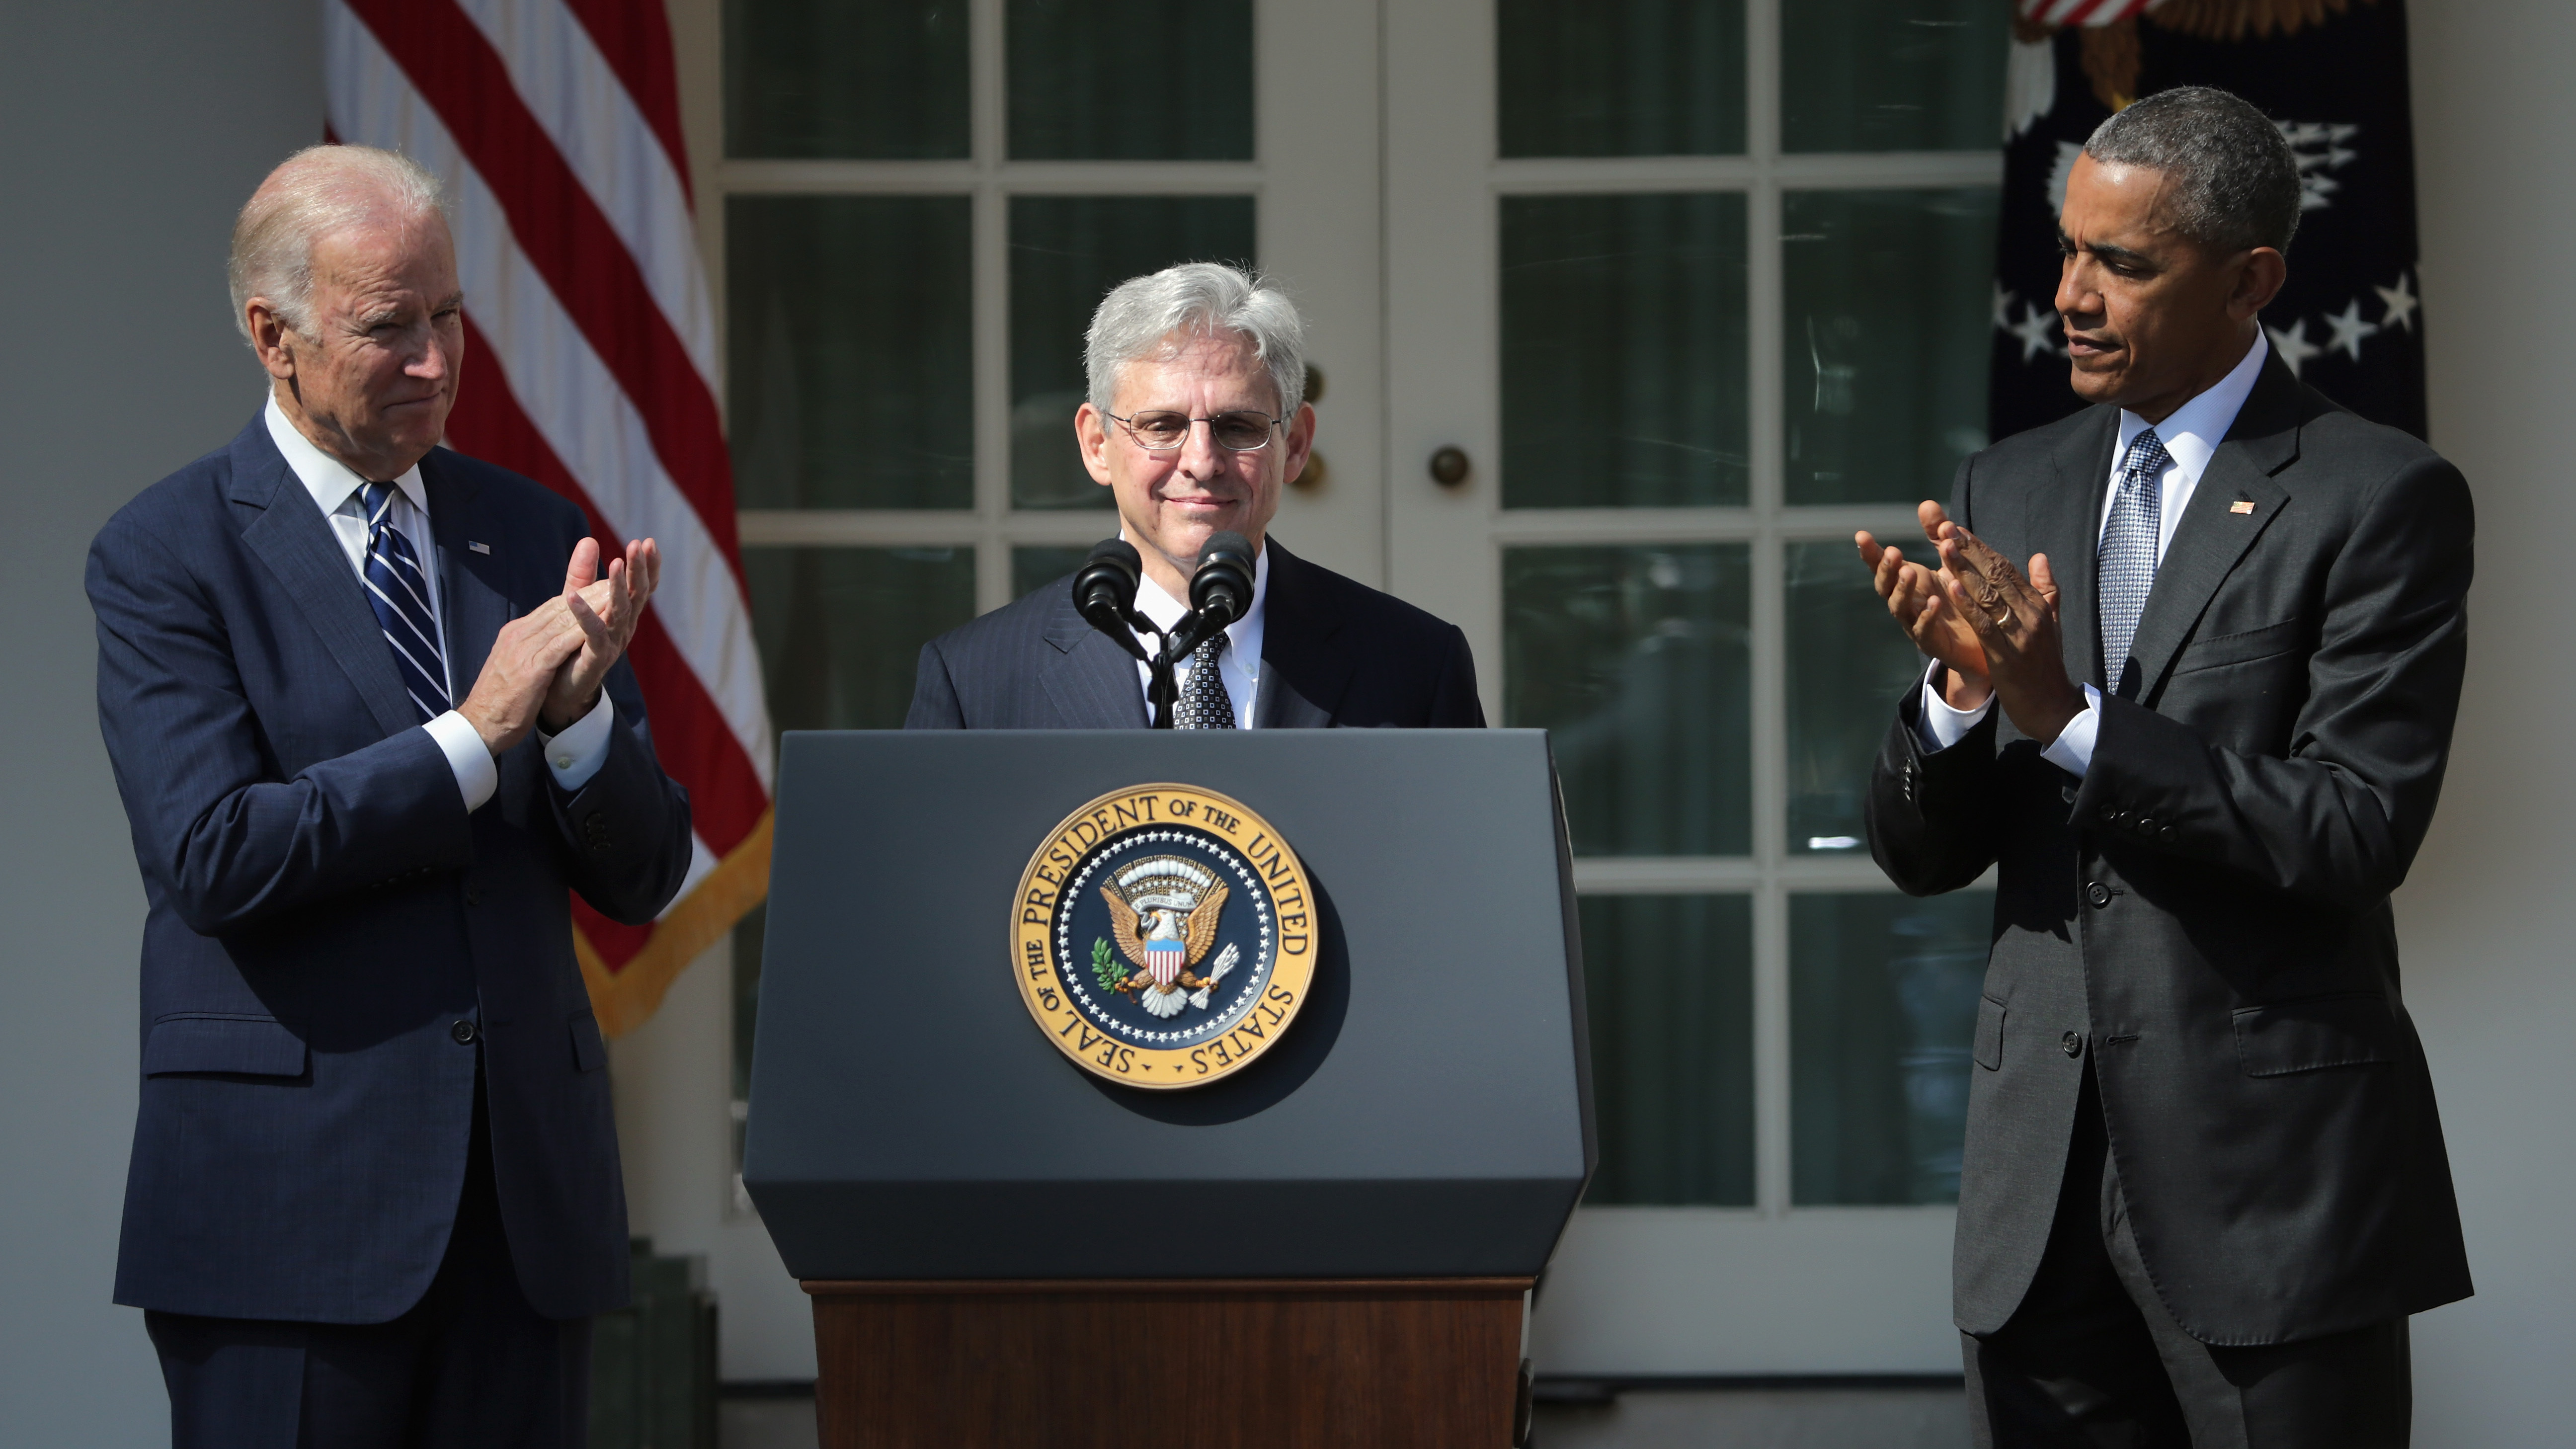 Merrick Garland Has A Reputation Of Collegiality, Record Of ...